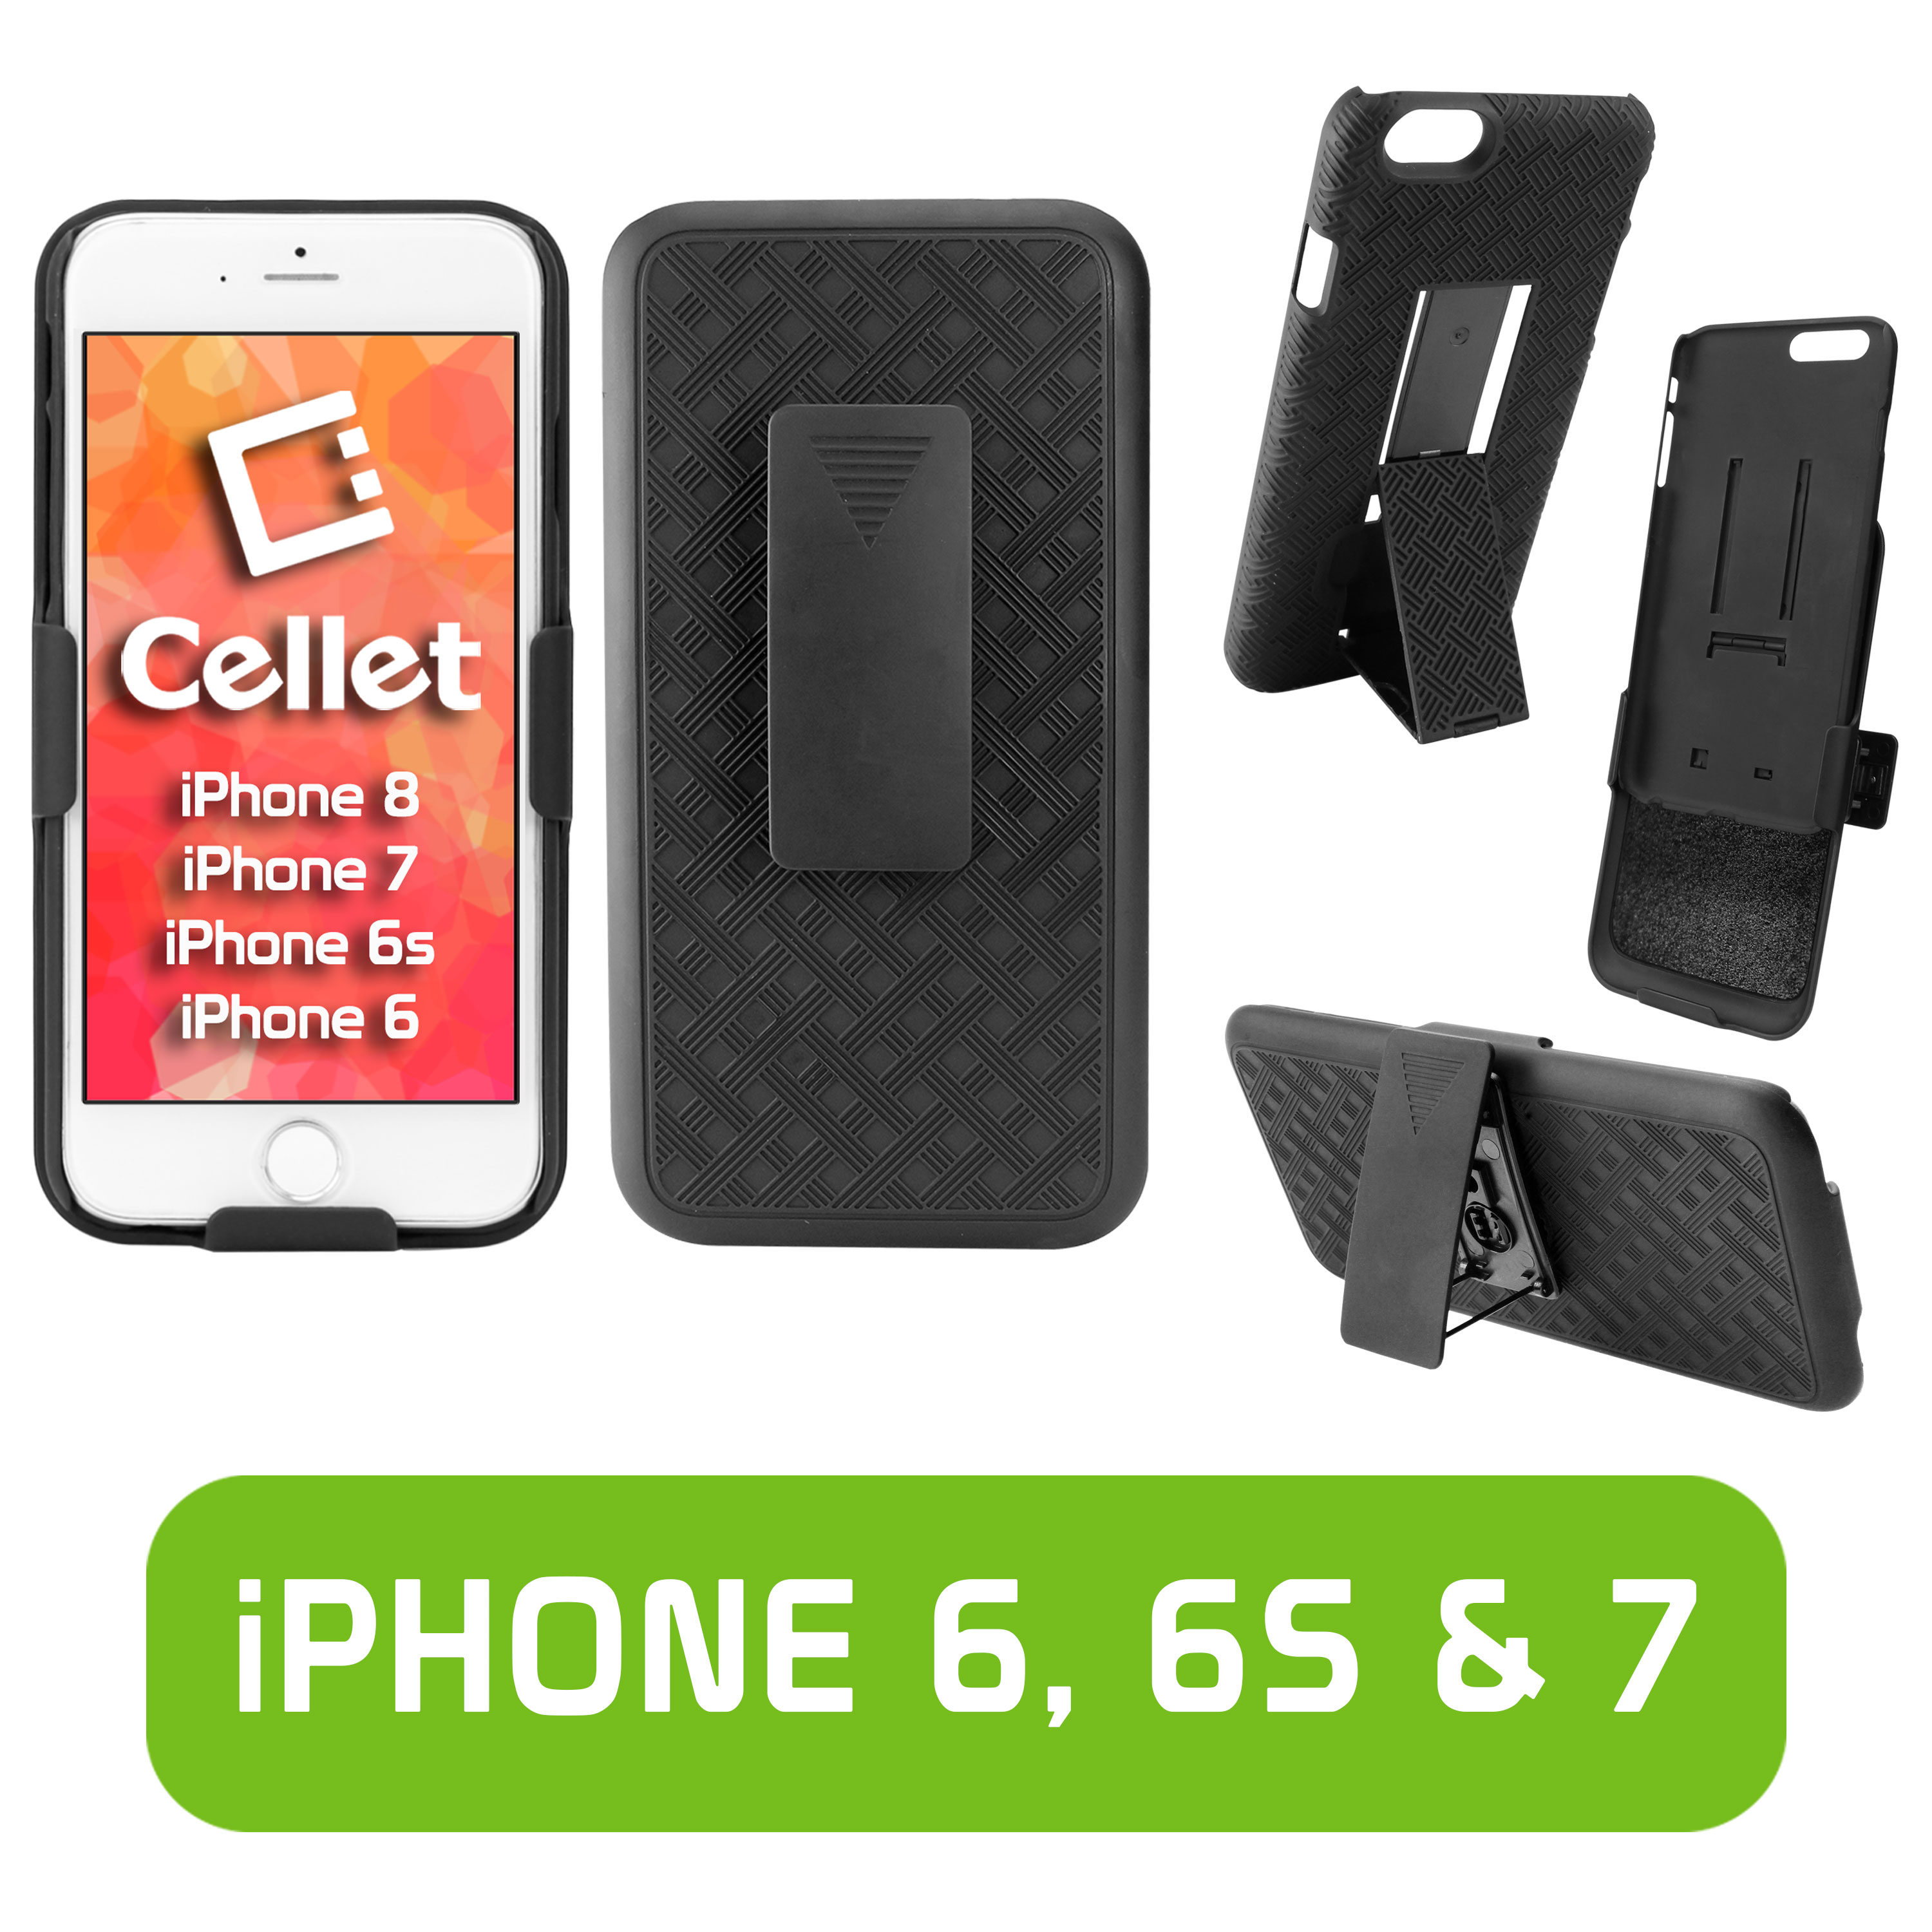 Cellet Shell + Holster + Kickstand Combo Case for Apple iPhone 8, 7, 6, or 6s